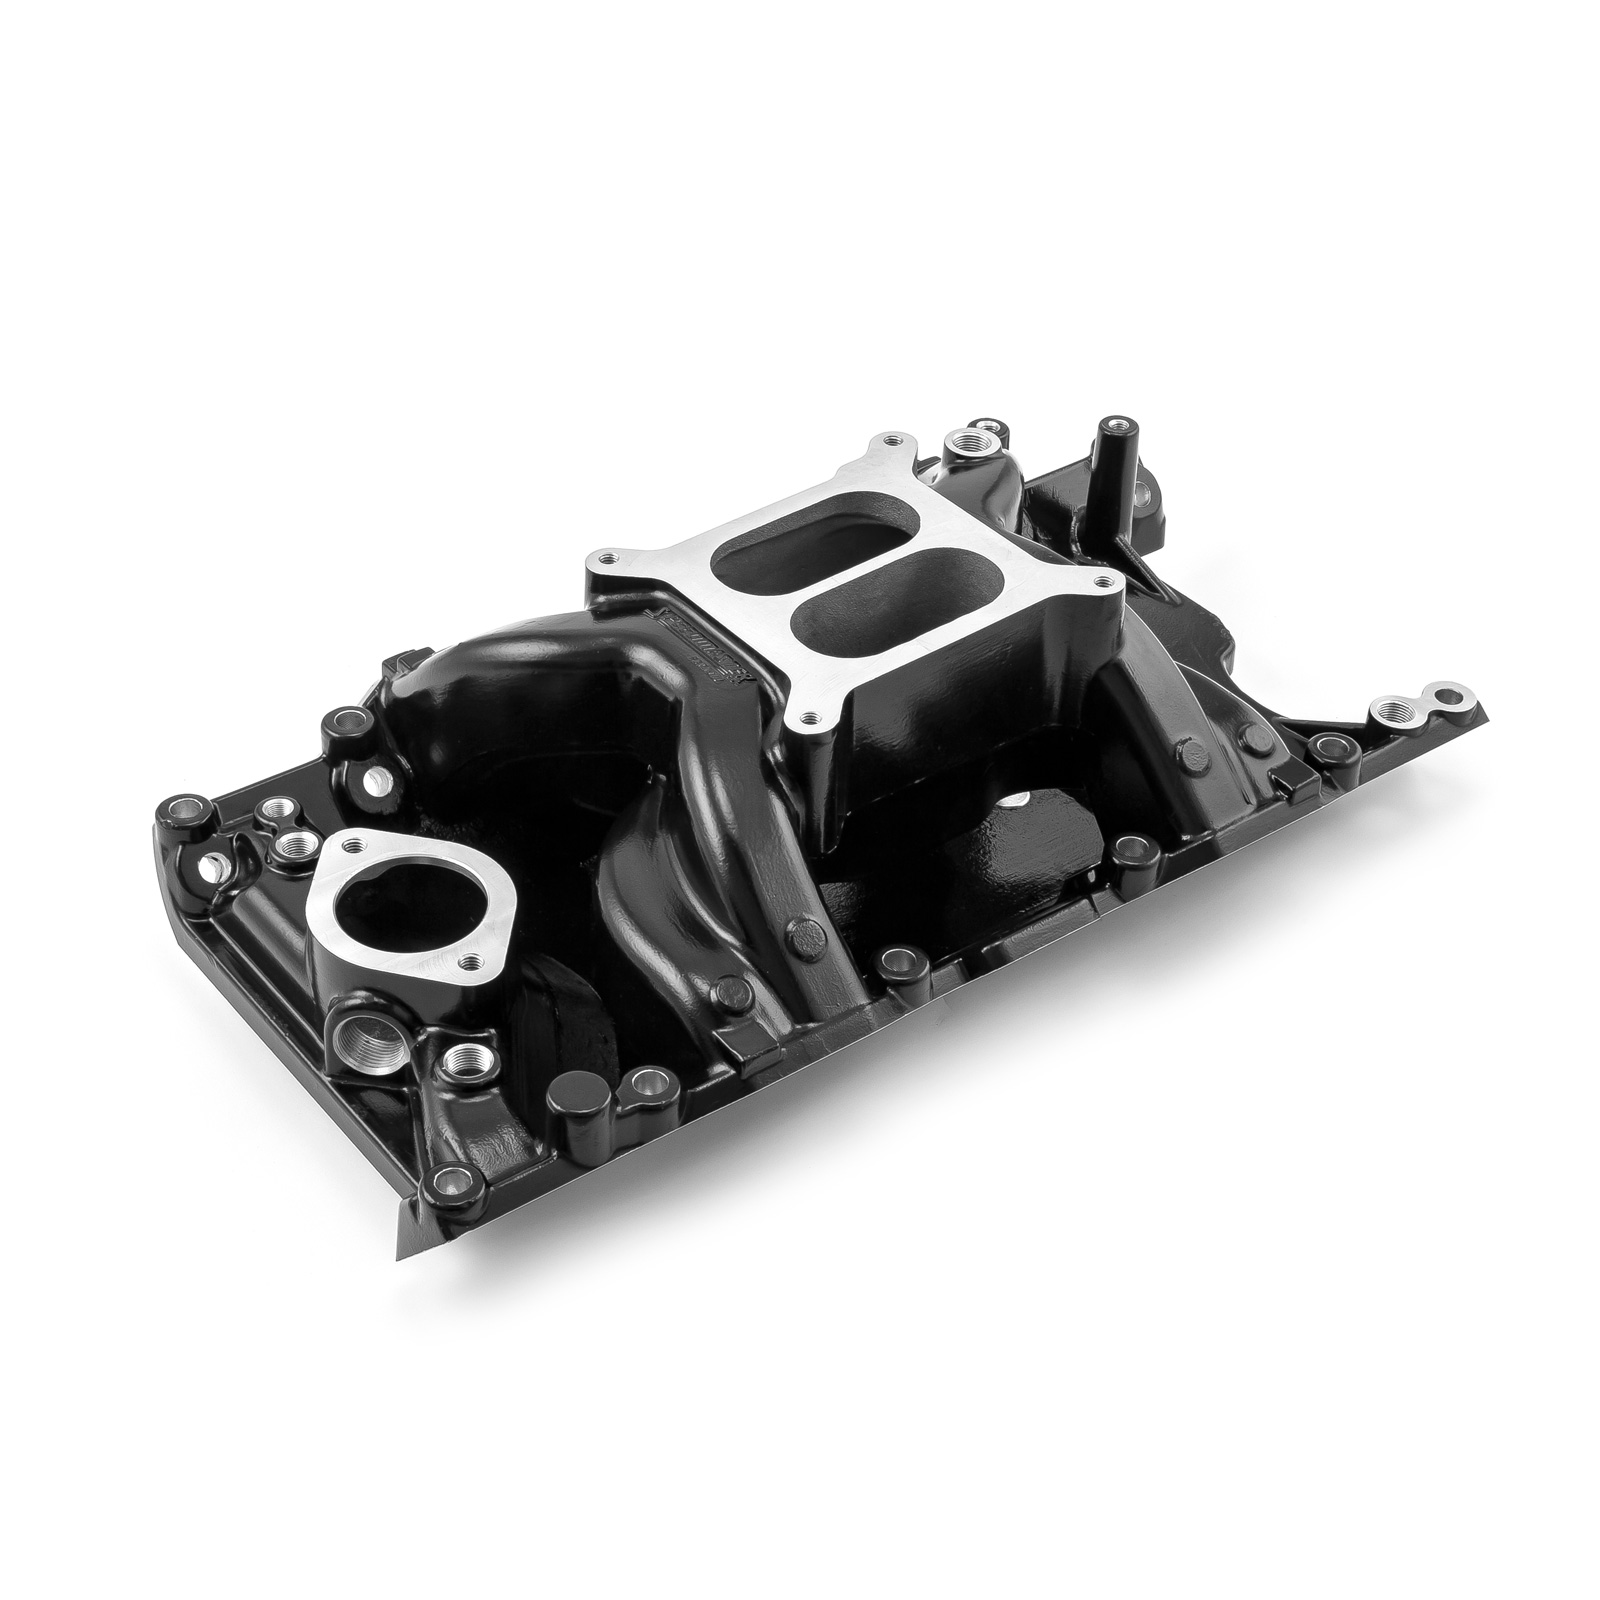 Mopar Chrysler Dodge SB 318 360 MidRise Air Intake Manifold Black